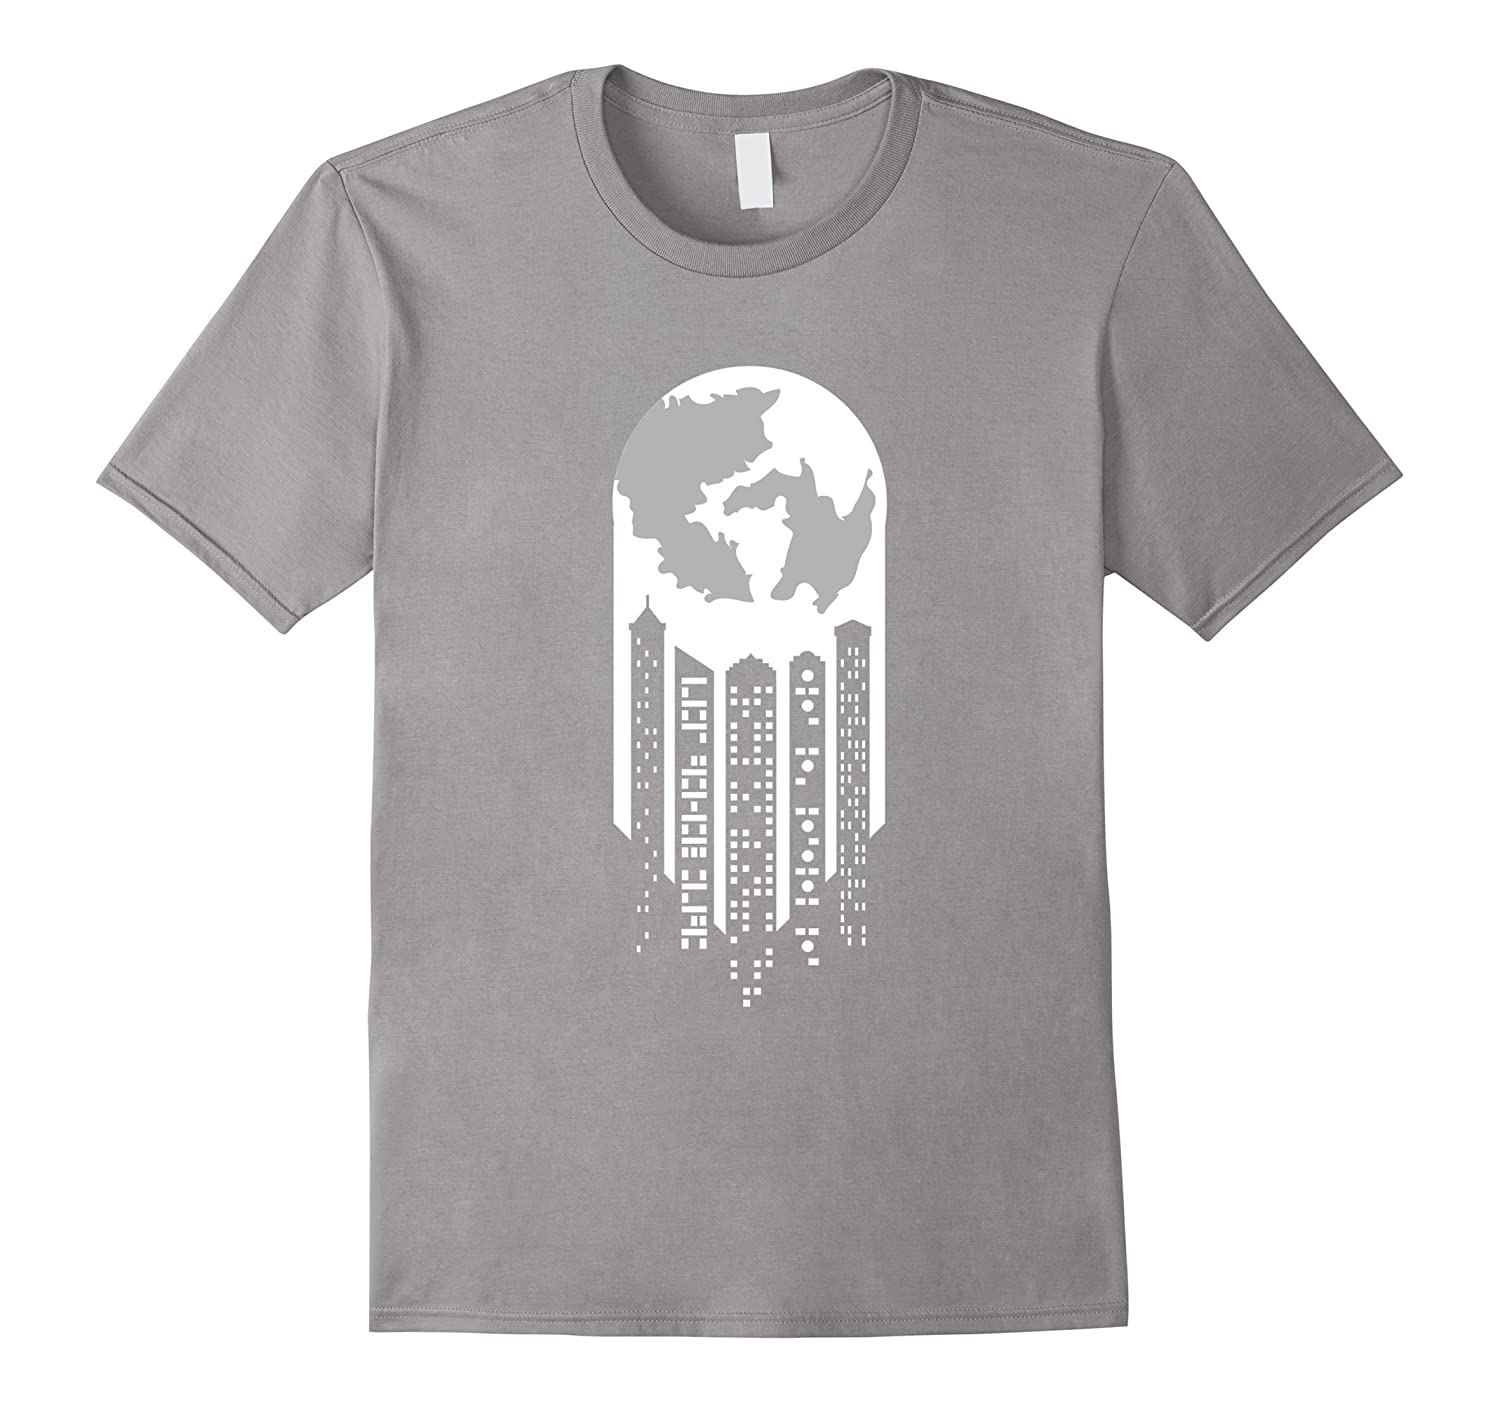 Cityscape Earth Moon Dripping Funny Artistic Surreal T-Shirt-FL